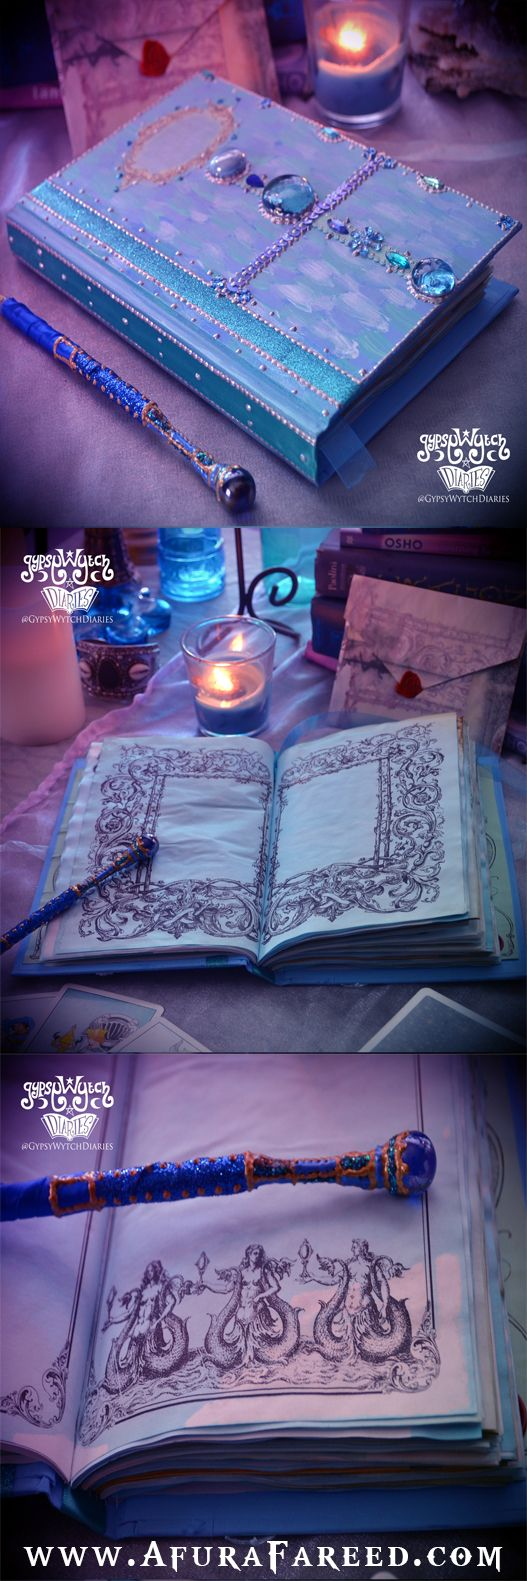 """""""Secrets of the Sea"""" handcrafted sea witch book of shadows by GypsyWytch Diaries. $55.55"""